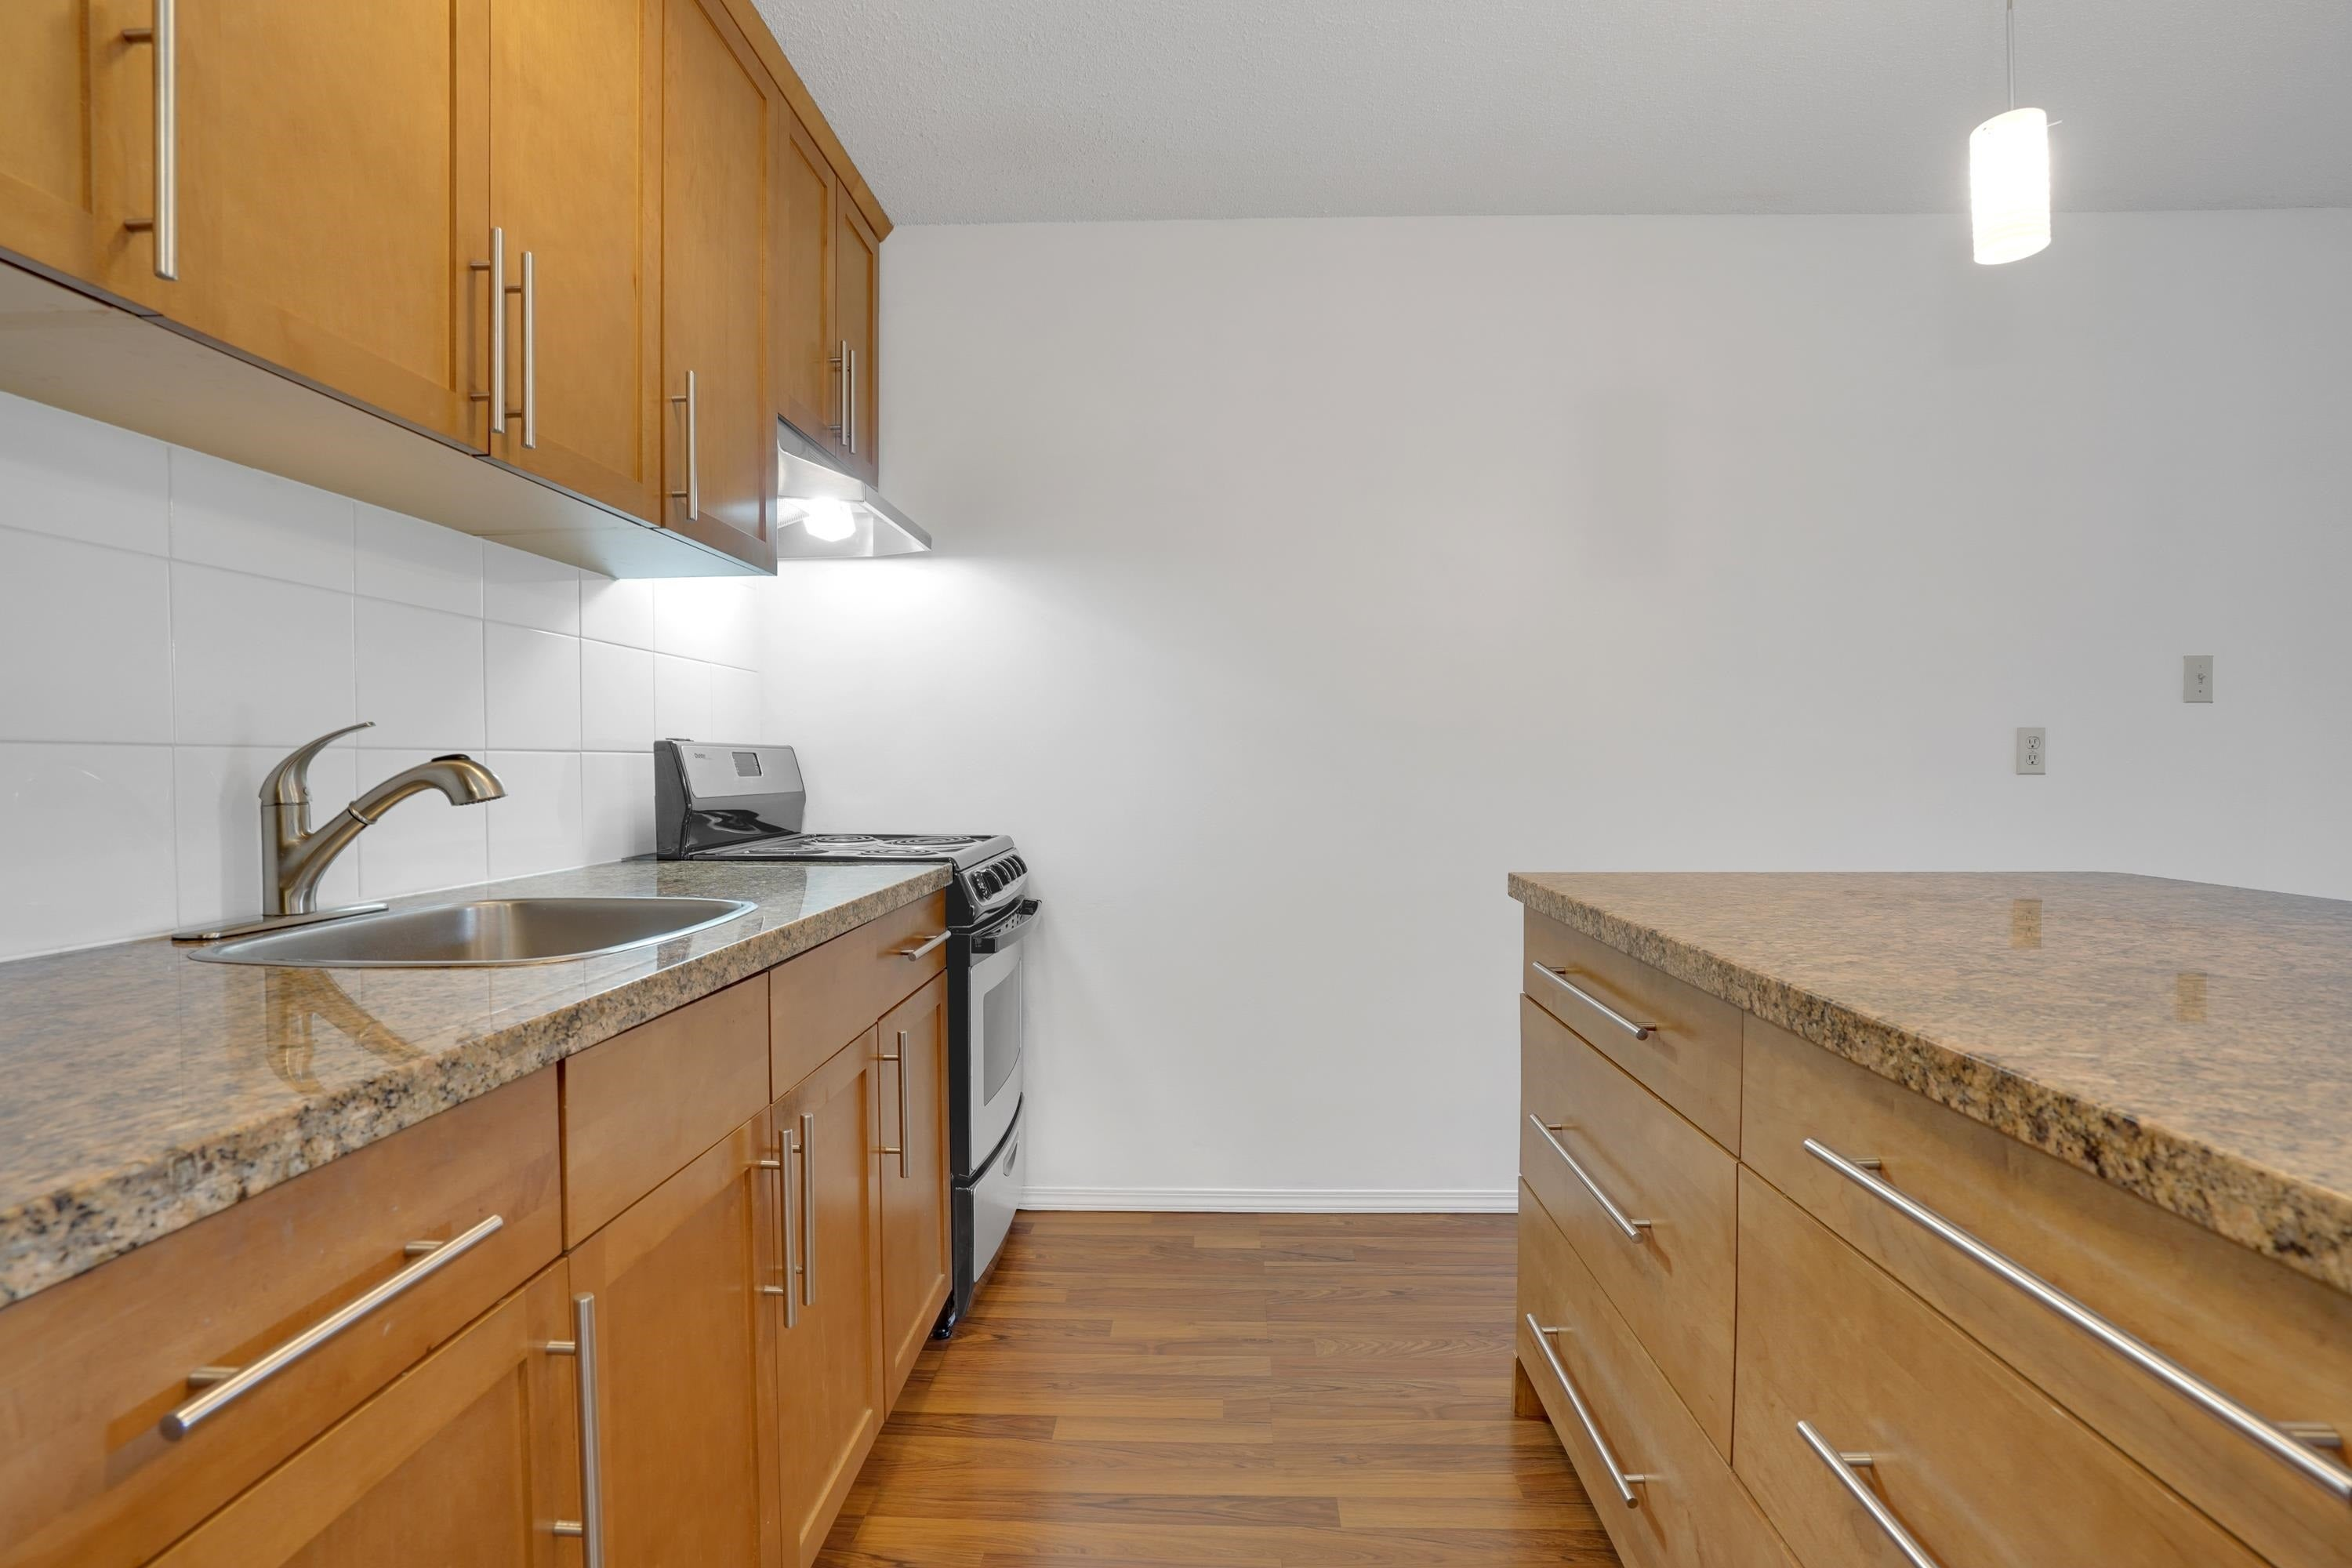 208 270 WEST 3RD STREET - Lower Lonsdale Apartment/Condo for sale, 1 Bedroom (R2615758) - #9